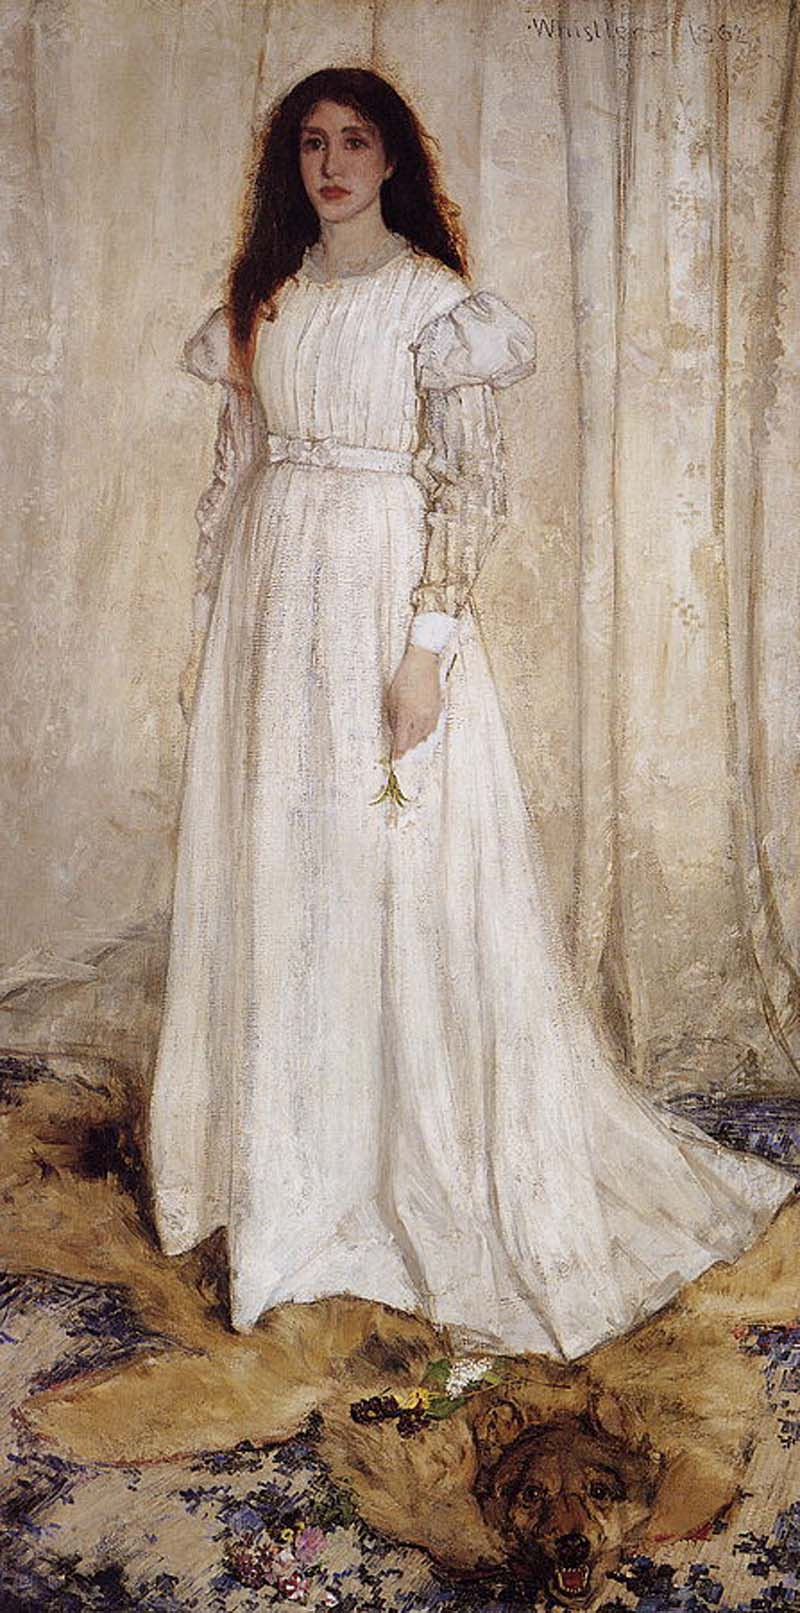 James Whistler's Symphony in White no 1 (The Whiteweb Girl) 1862, National Gallery of Art Washington